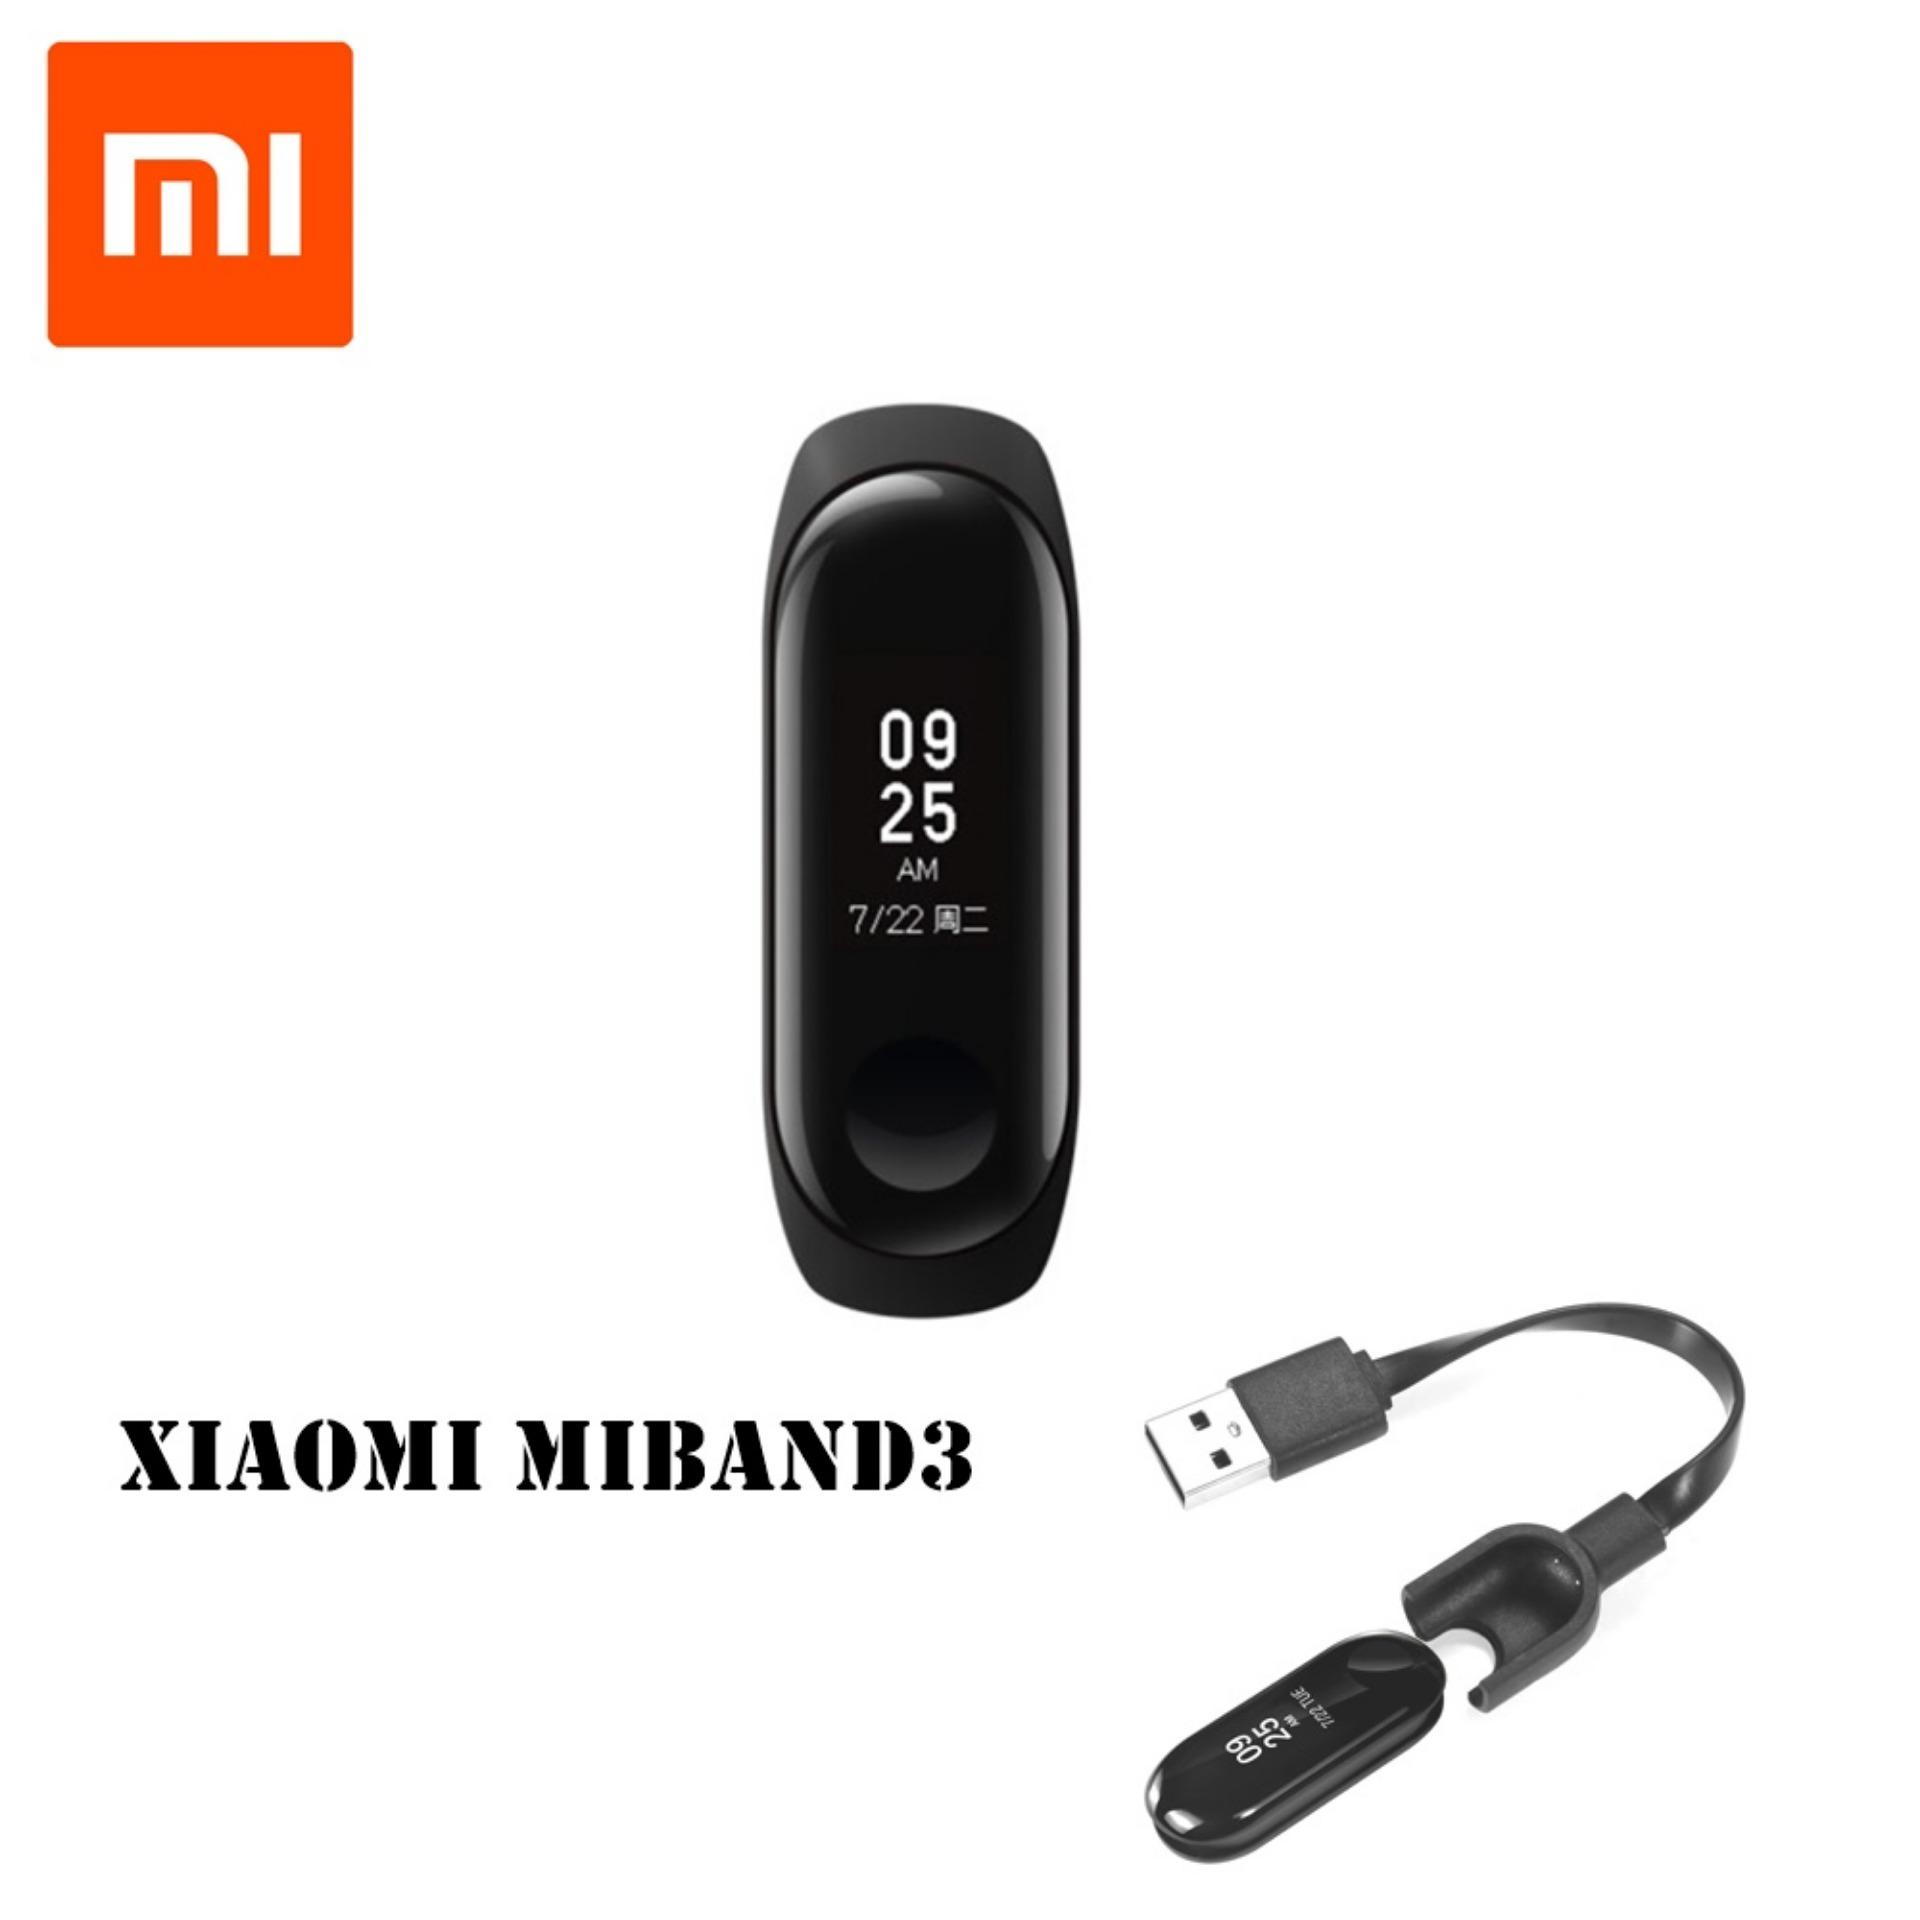 Buy Sell Cheapest Xiaomi 3 Oled Best Quality Product Deals Mi Band Display Free Screen Guard Smart Original Alt Miband 2